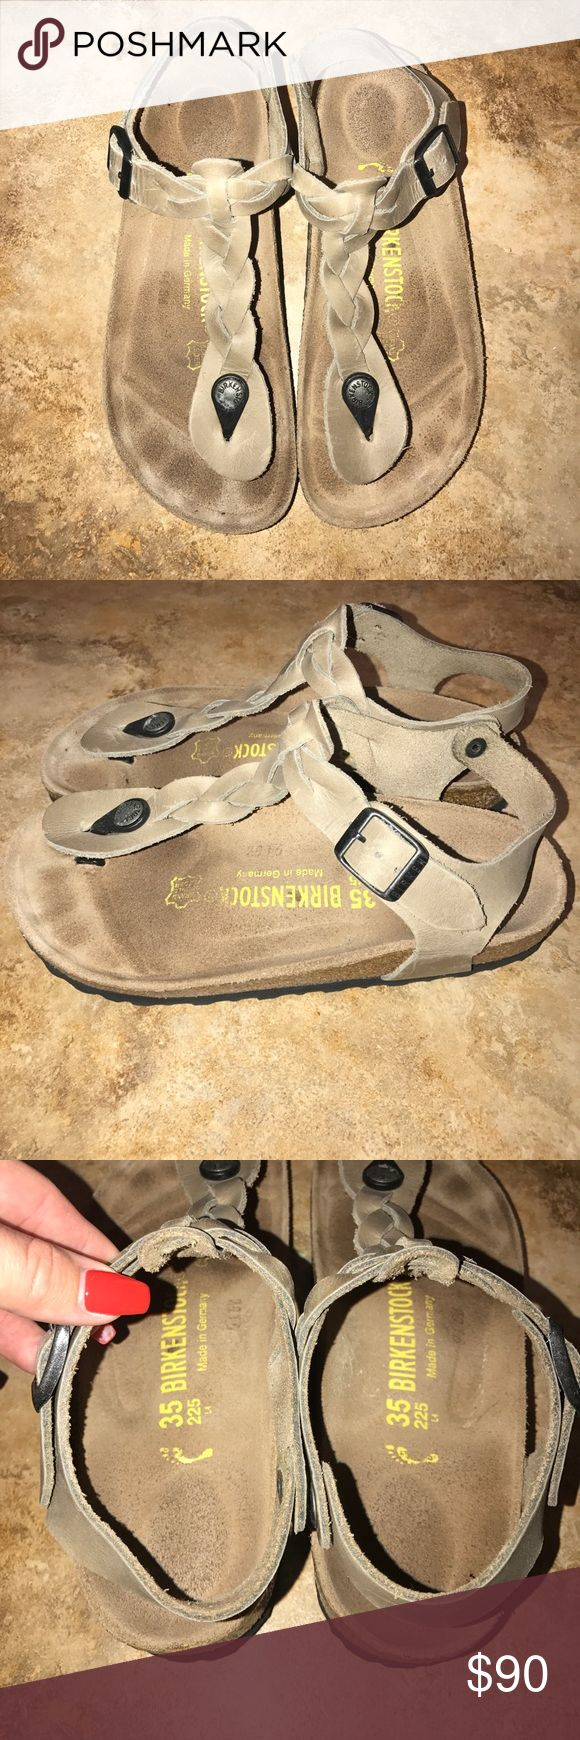 Birkenstock T-Strap These are practically new - worn only twice. Adorable gladiator look with a braided T-strap. Size 35, but fits like a women's 6. No trades. Birkenstock Shoes Sandals